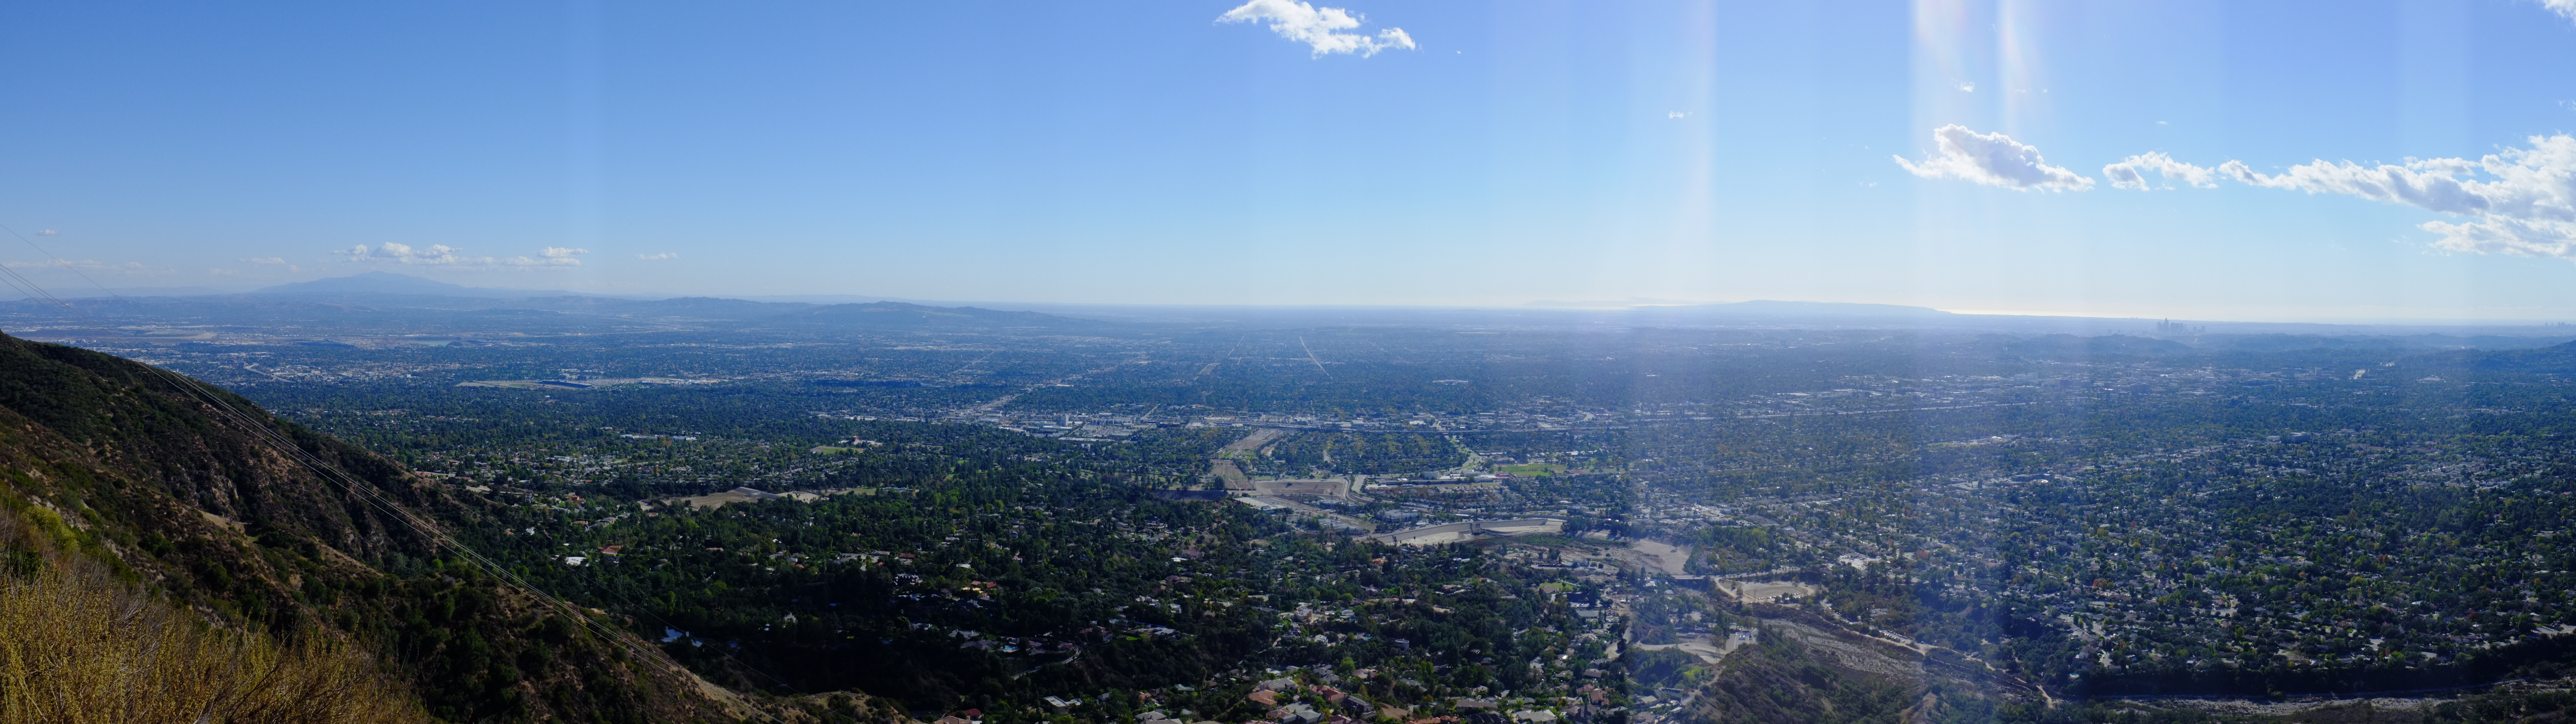 File:San Gabriel Valley Panorama.JPG - Wikimedia Commons